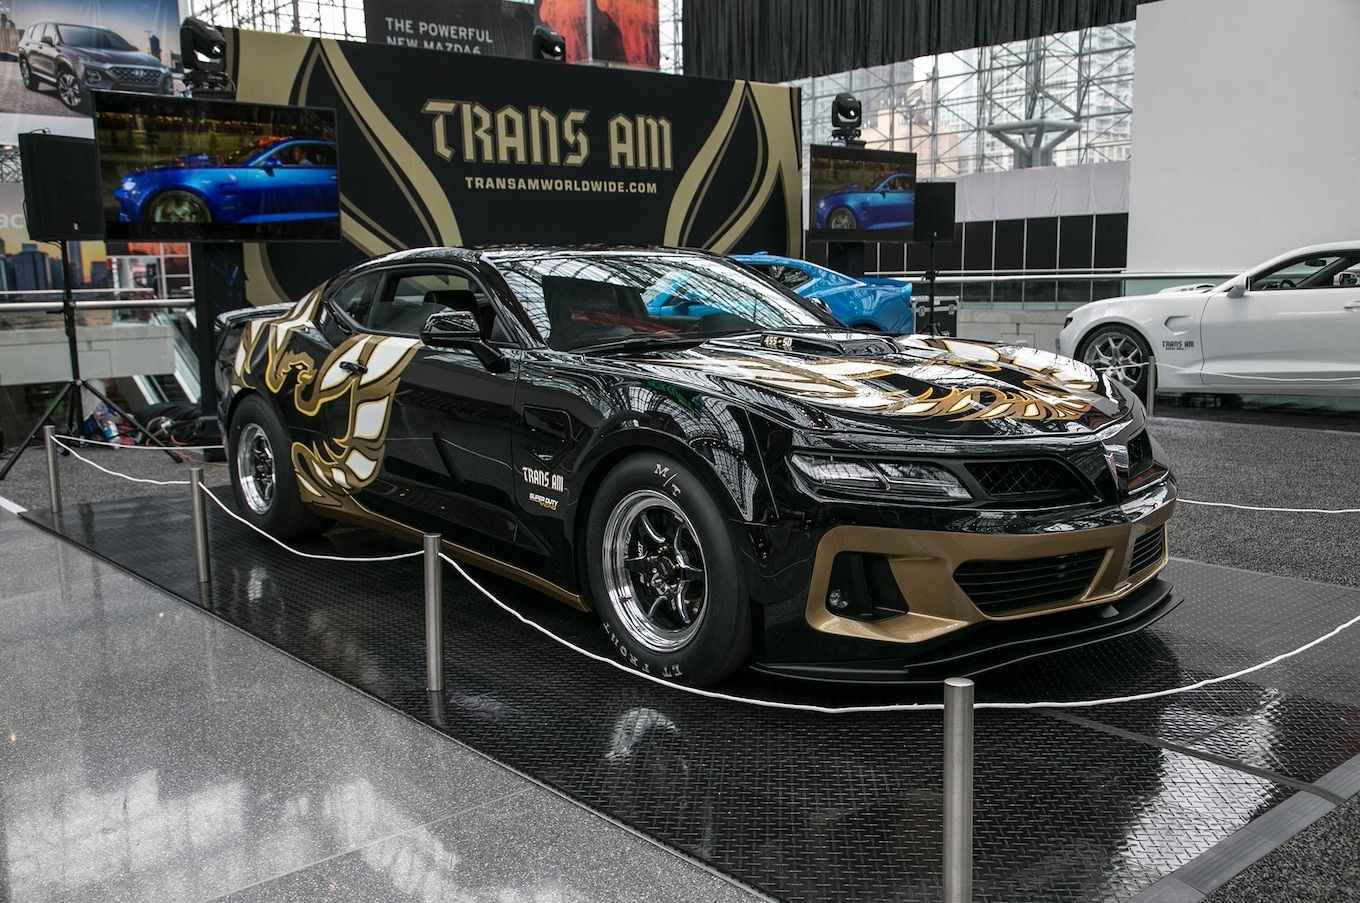 90 The Best 2019 Pontiac Firebird Trans Am Release Date and Concept